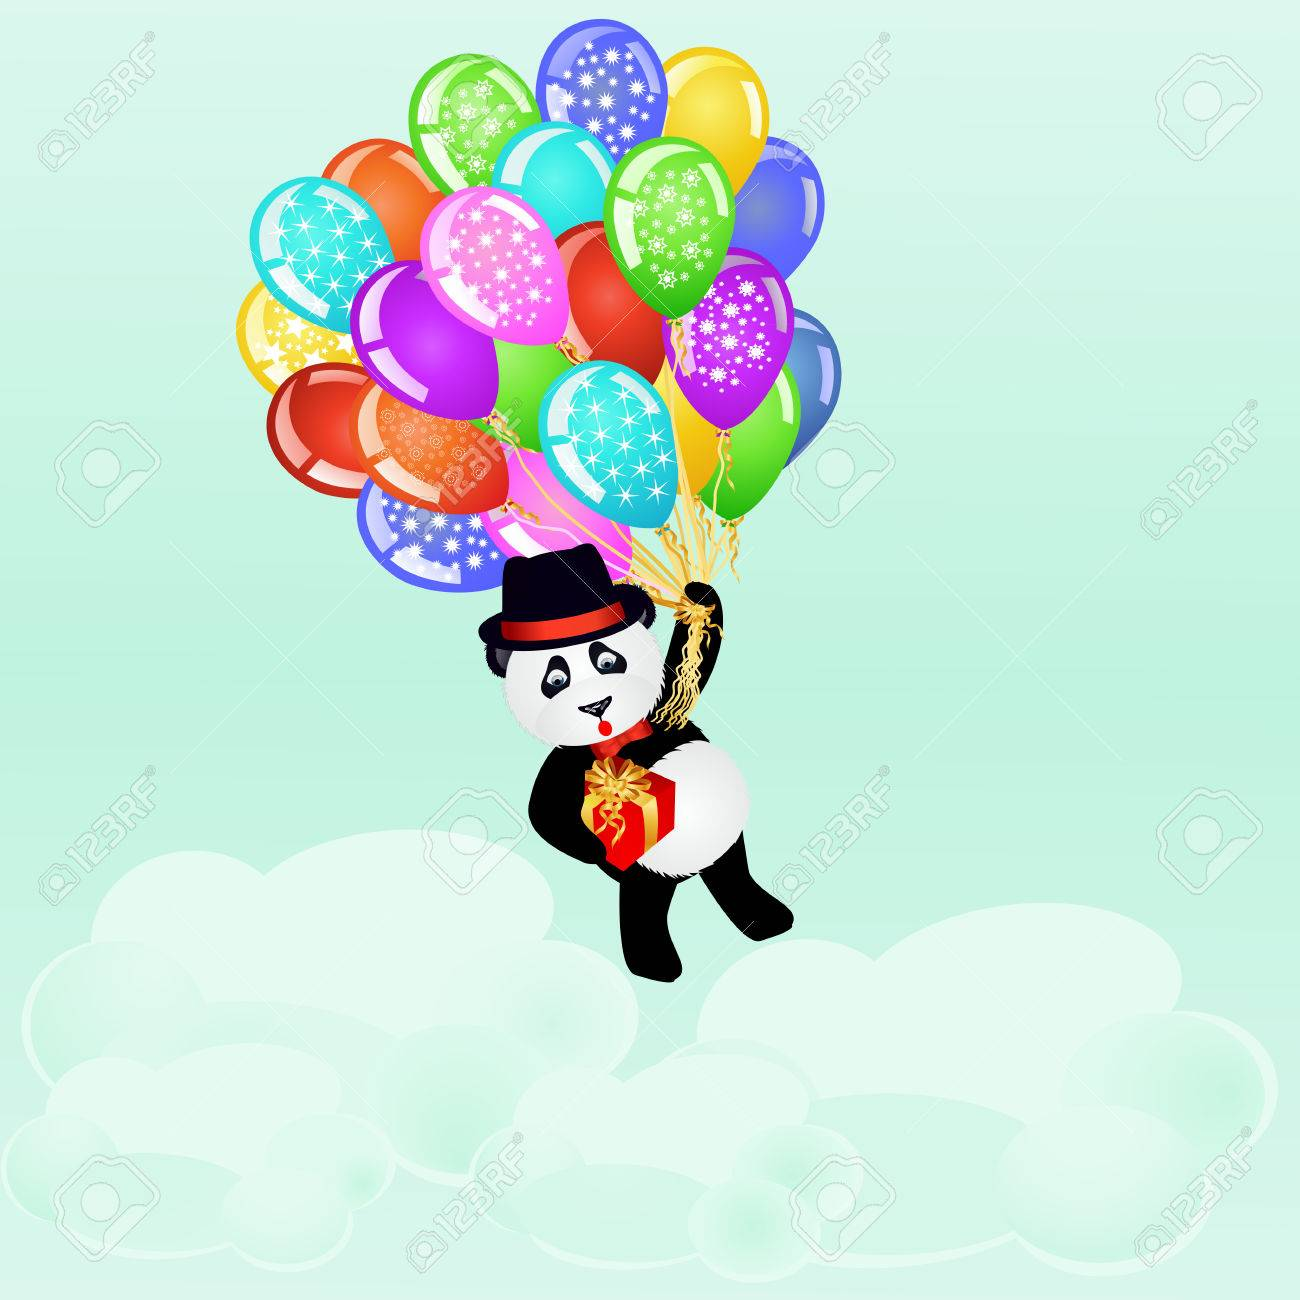 Cartoon Panda Flying With Birthday Balloons And Gift Above The Clouds Background Vector